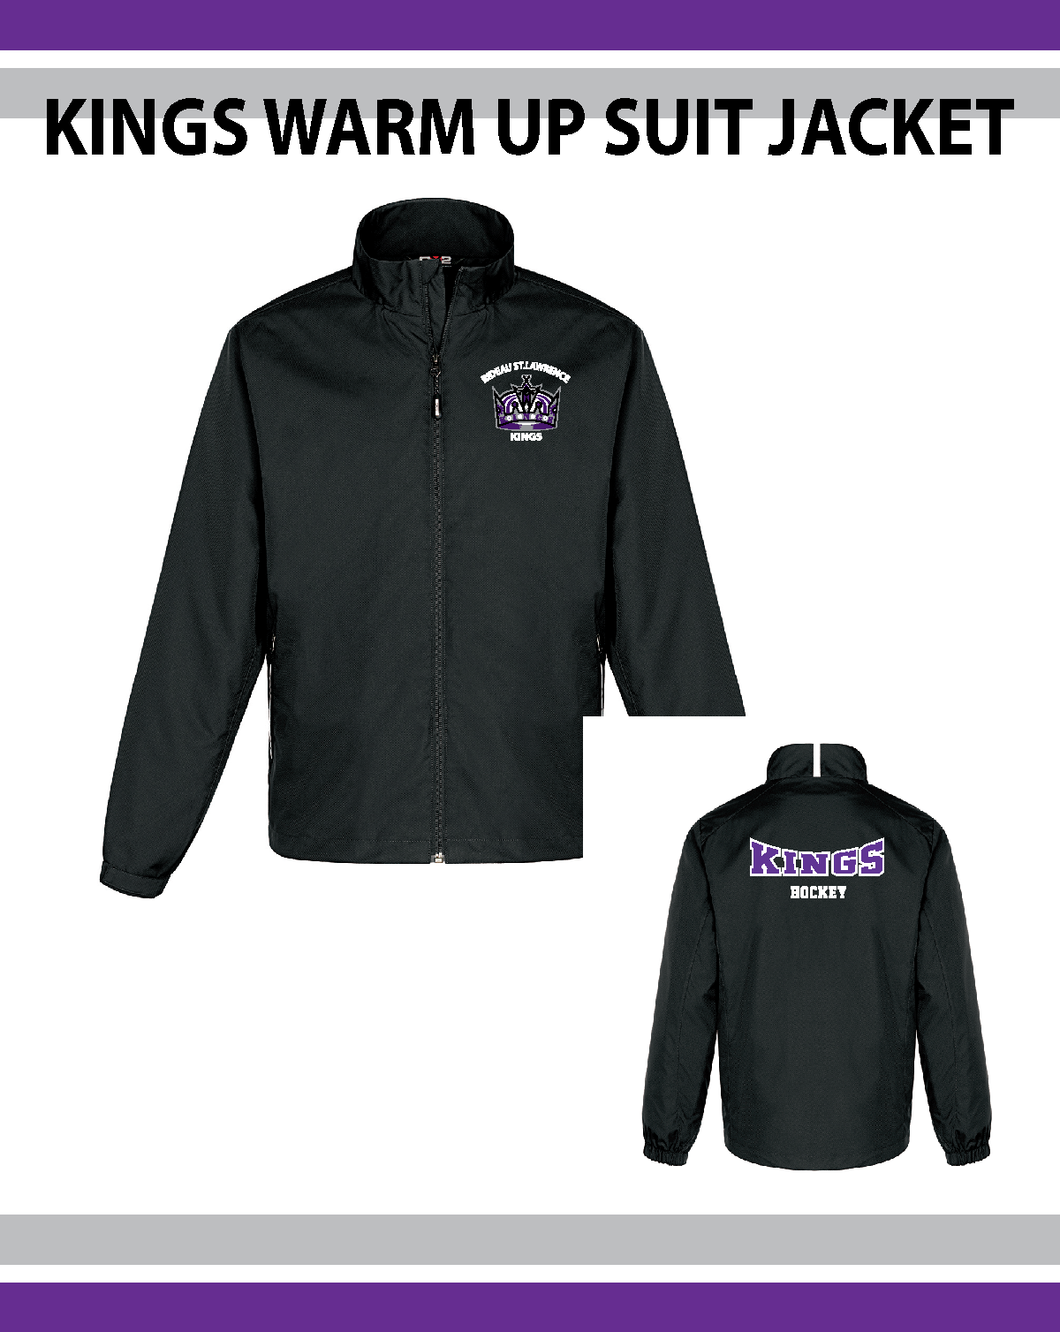 RSL Kings- Warm Up Jackets